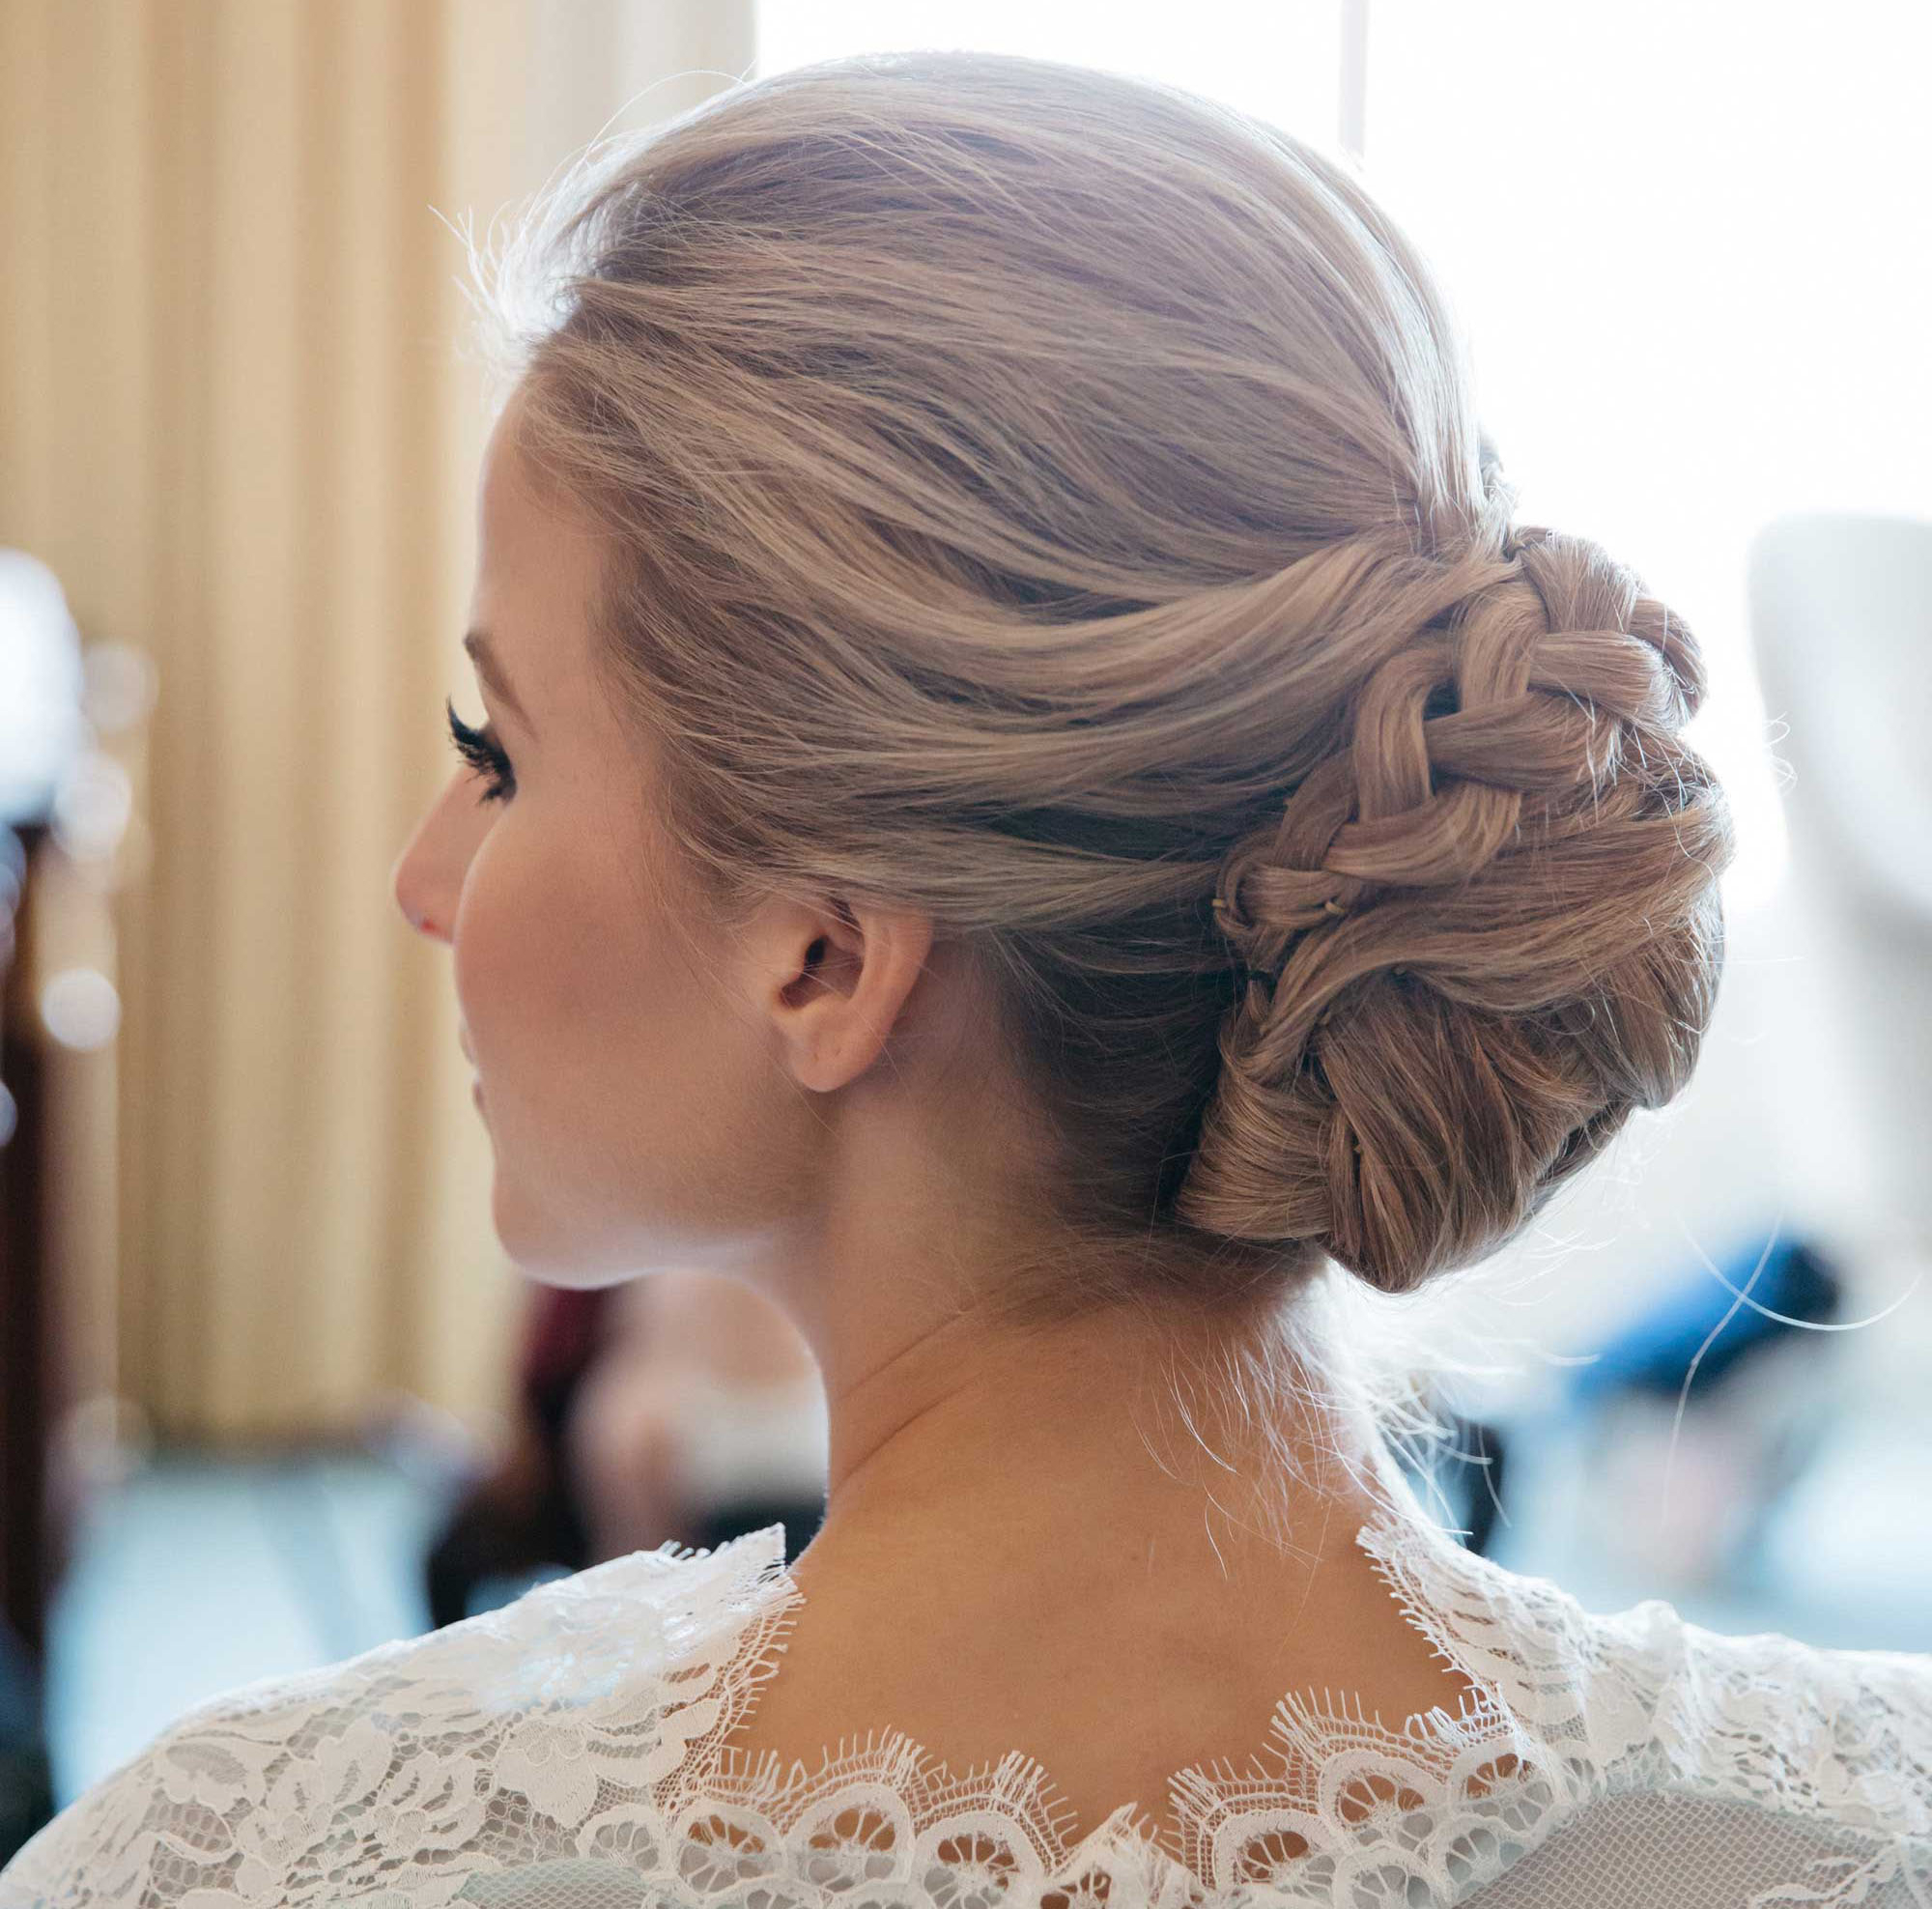 Braided Hairstyles: 5 Ideas For Your Wedding Look – Inside Weddings With Well Liked Embellished Twisted Bun For Brides (View 6 of 20)